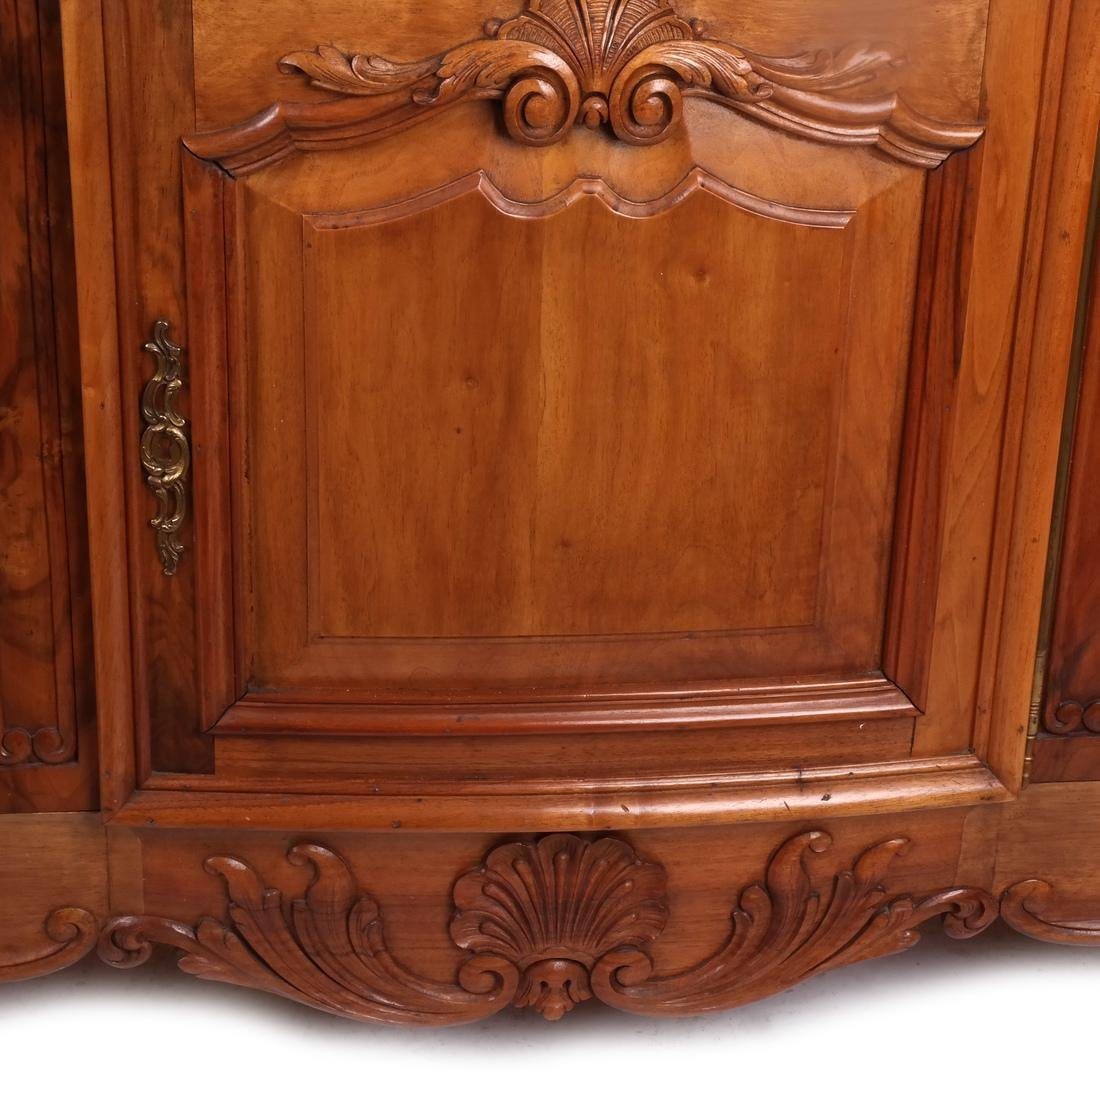 French Provincial-Style Sideboard - 3